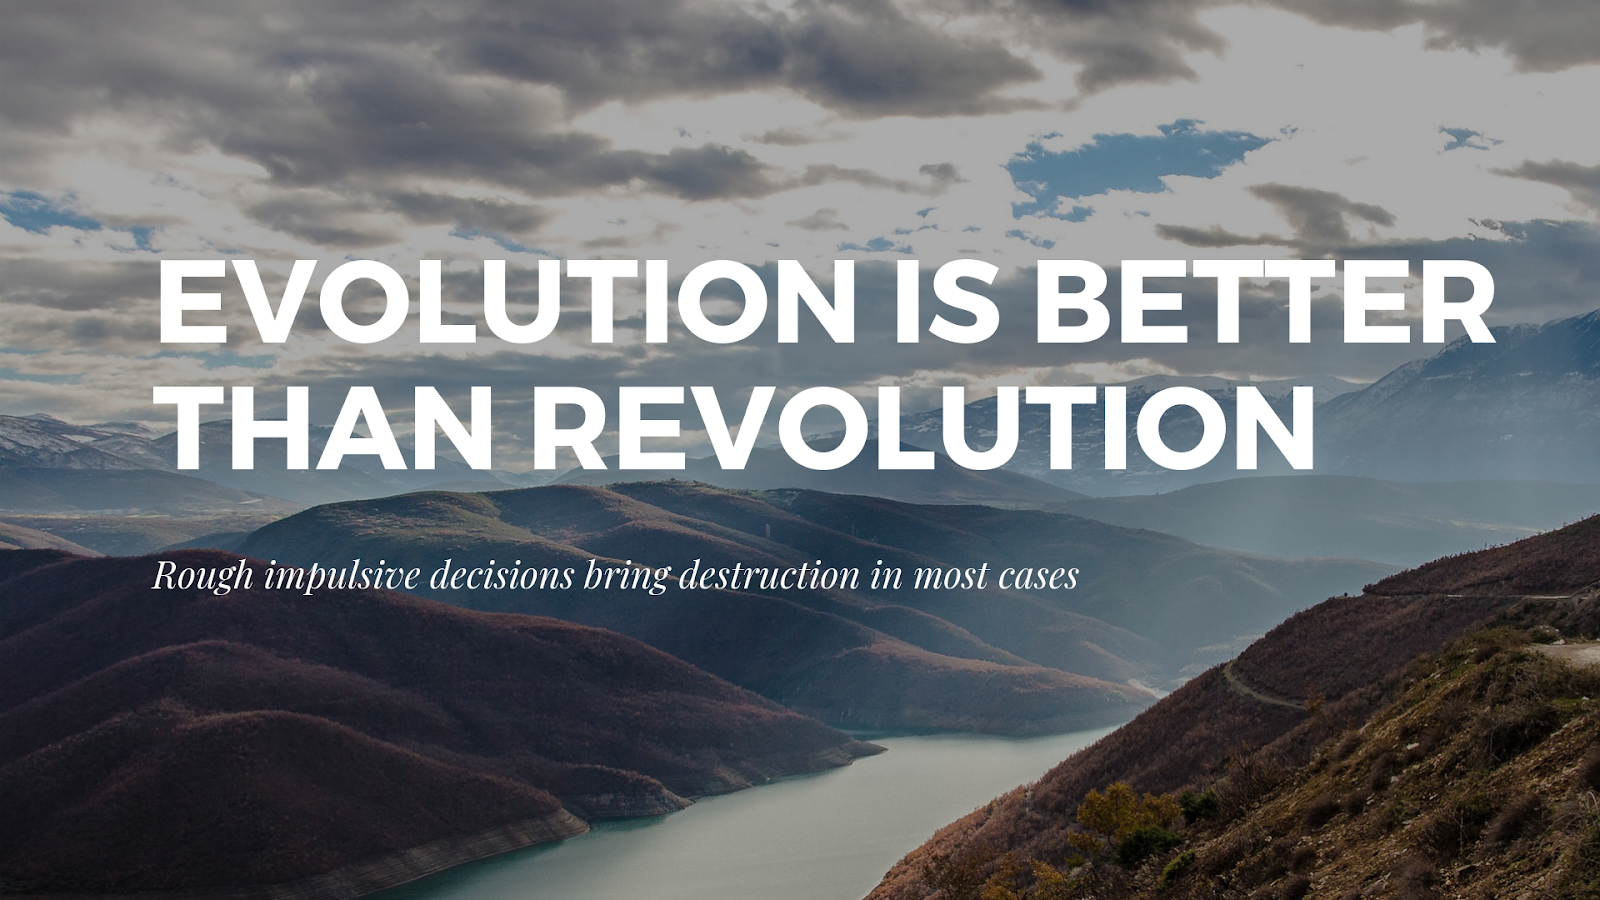 Evolution is better than revolutions